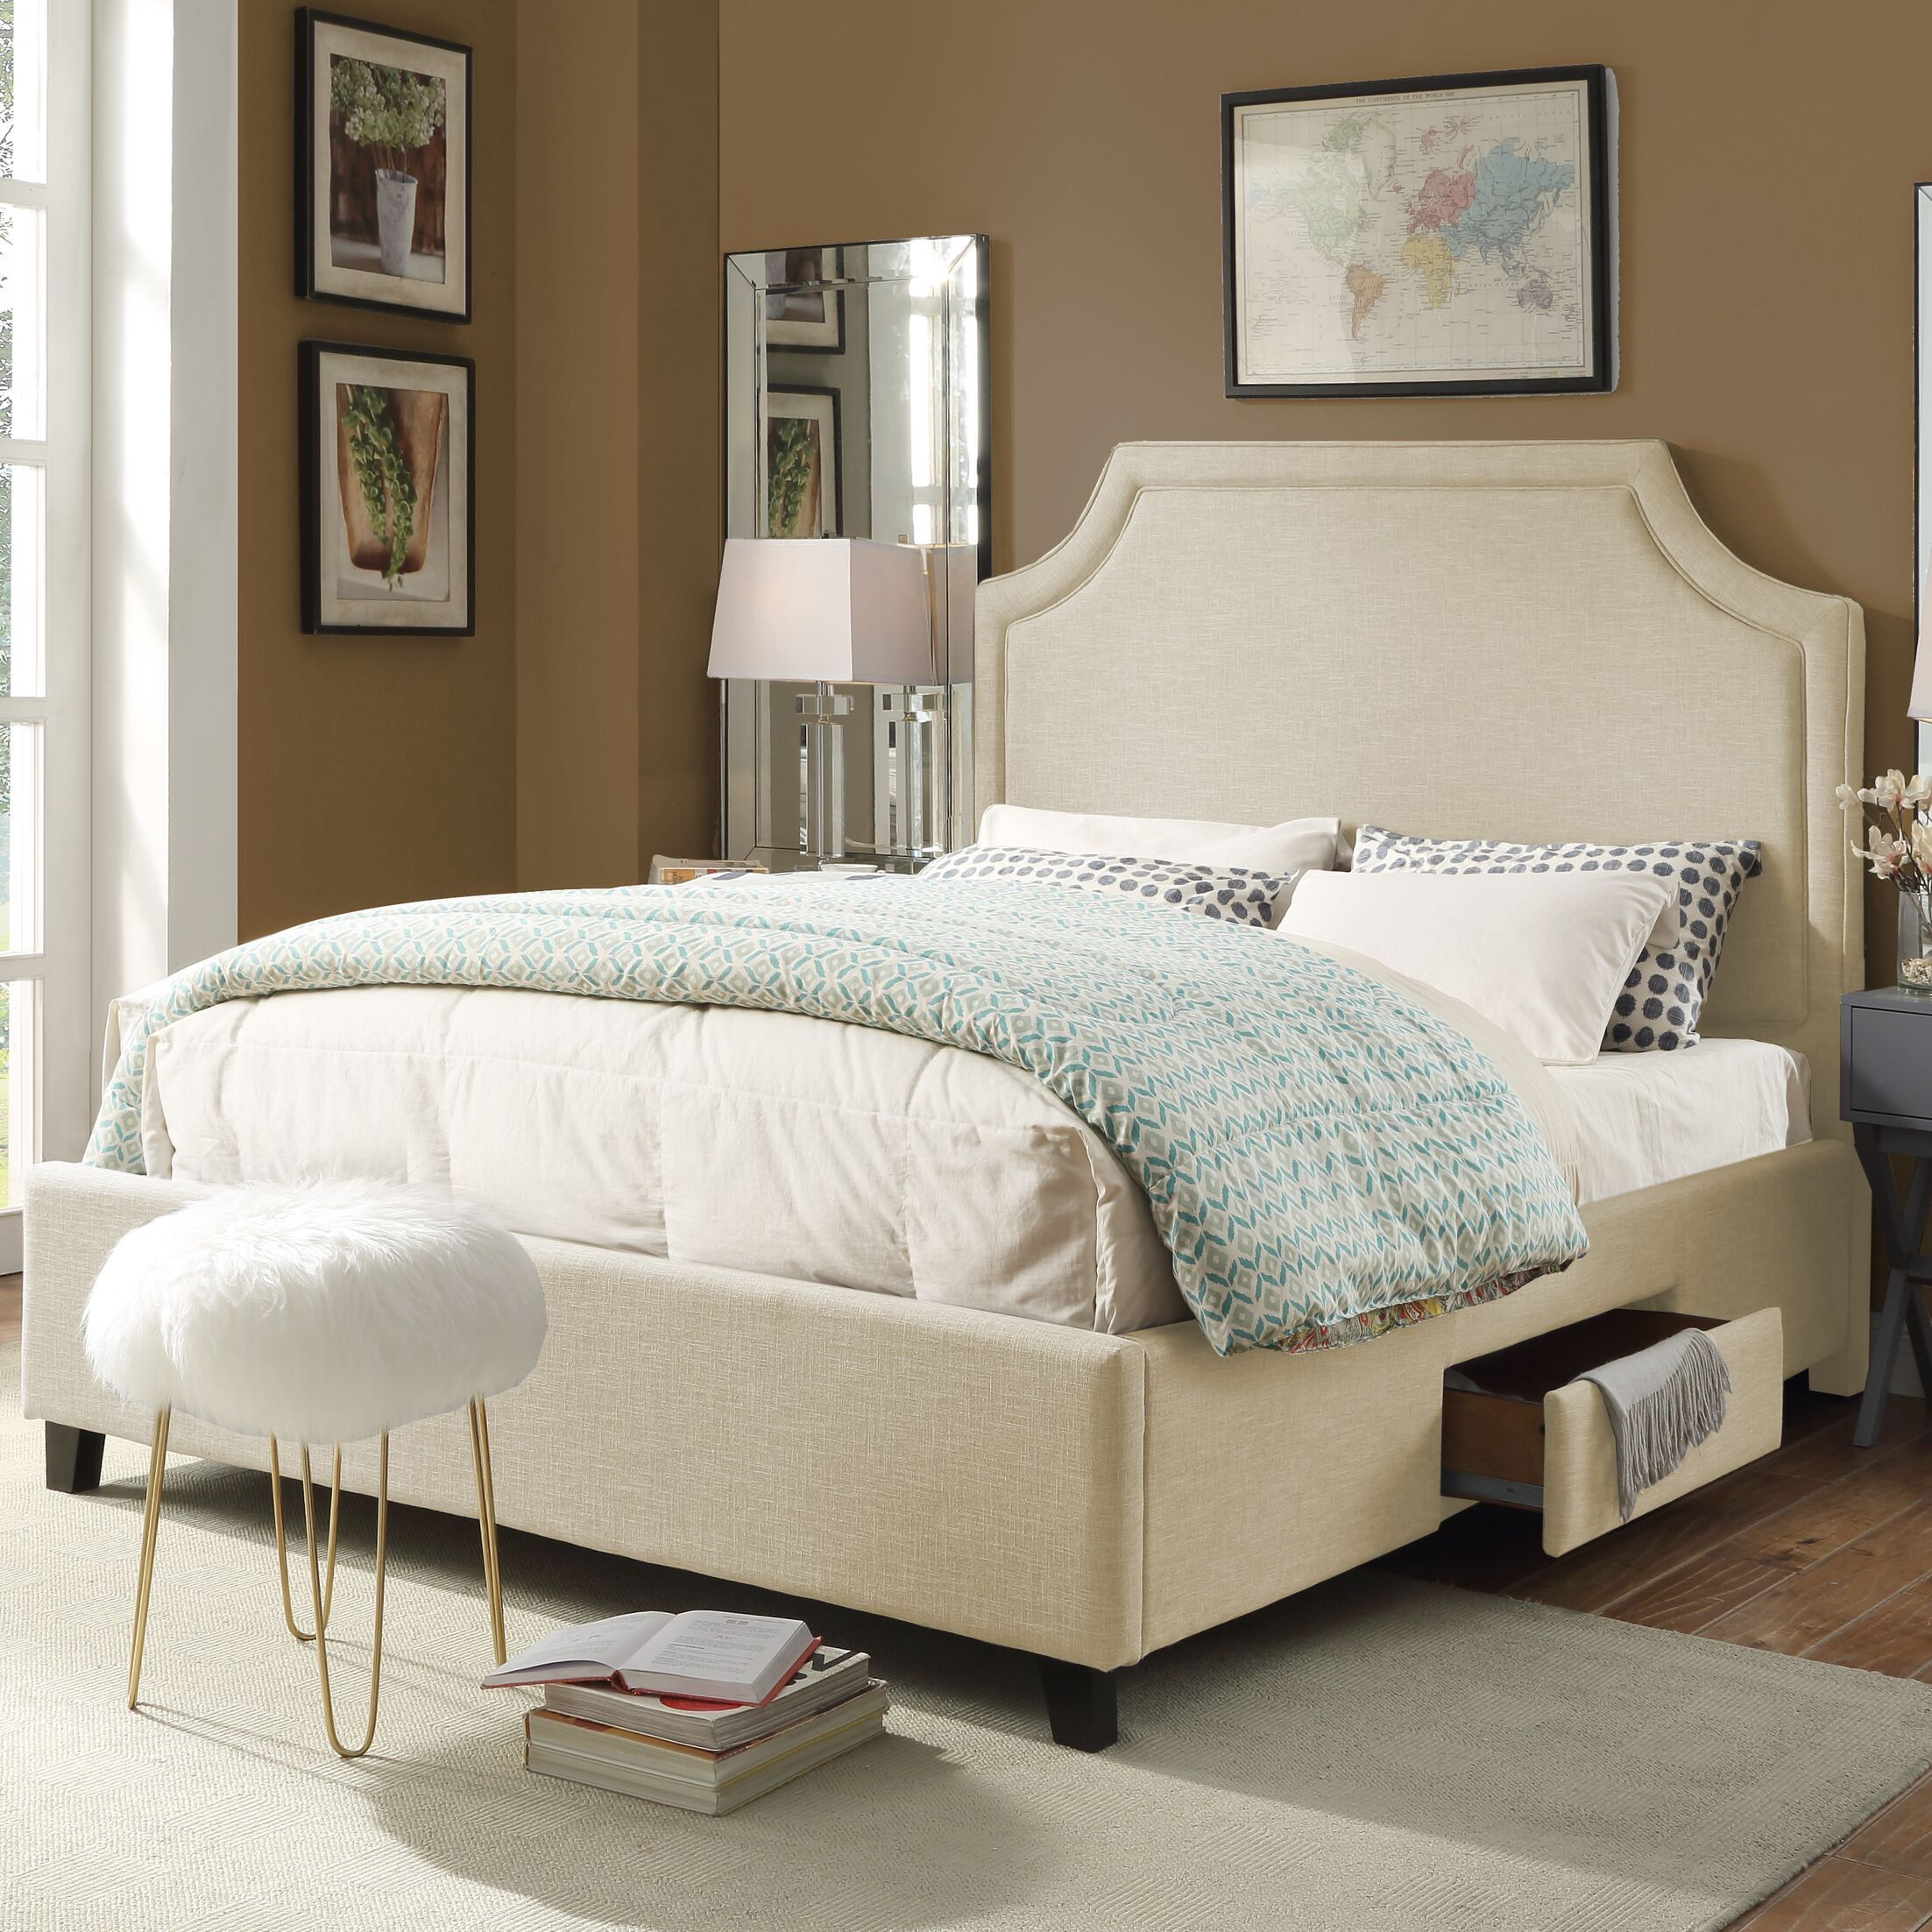 Louis Storage Platform Bed Size: Queen, Color: Cream White